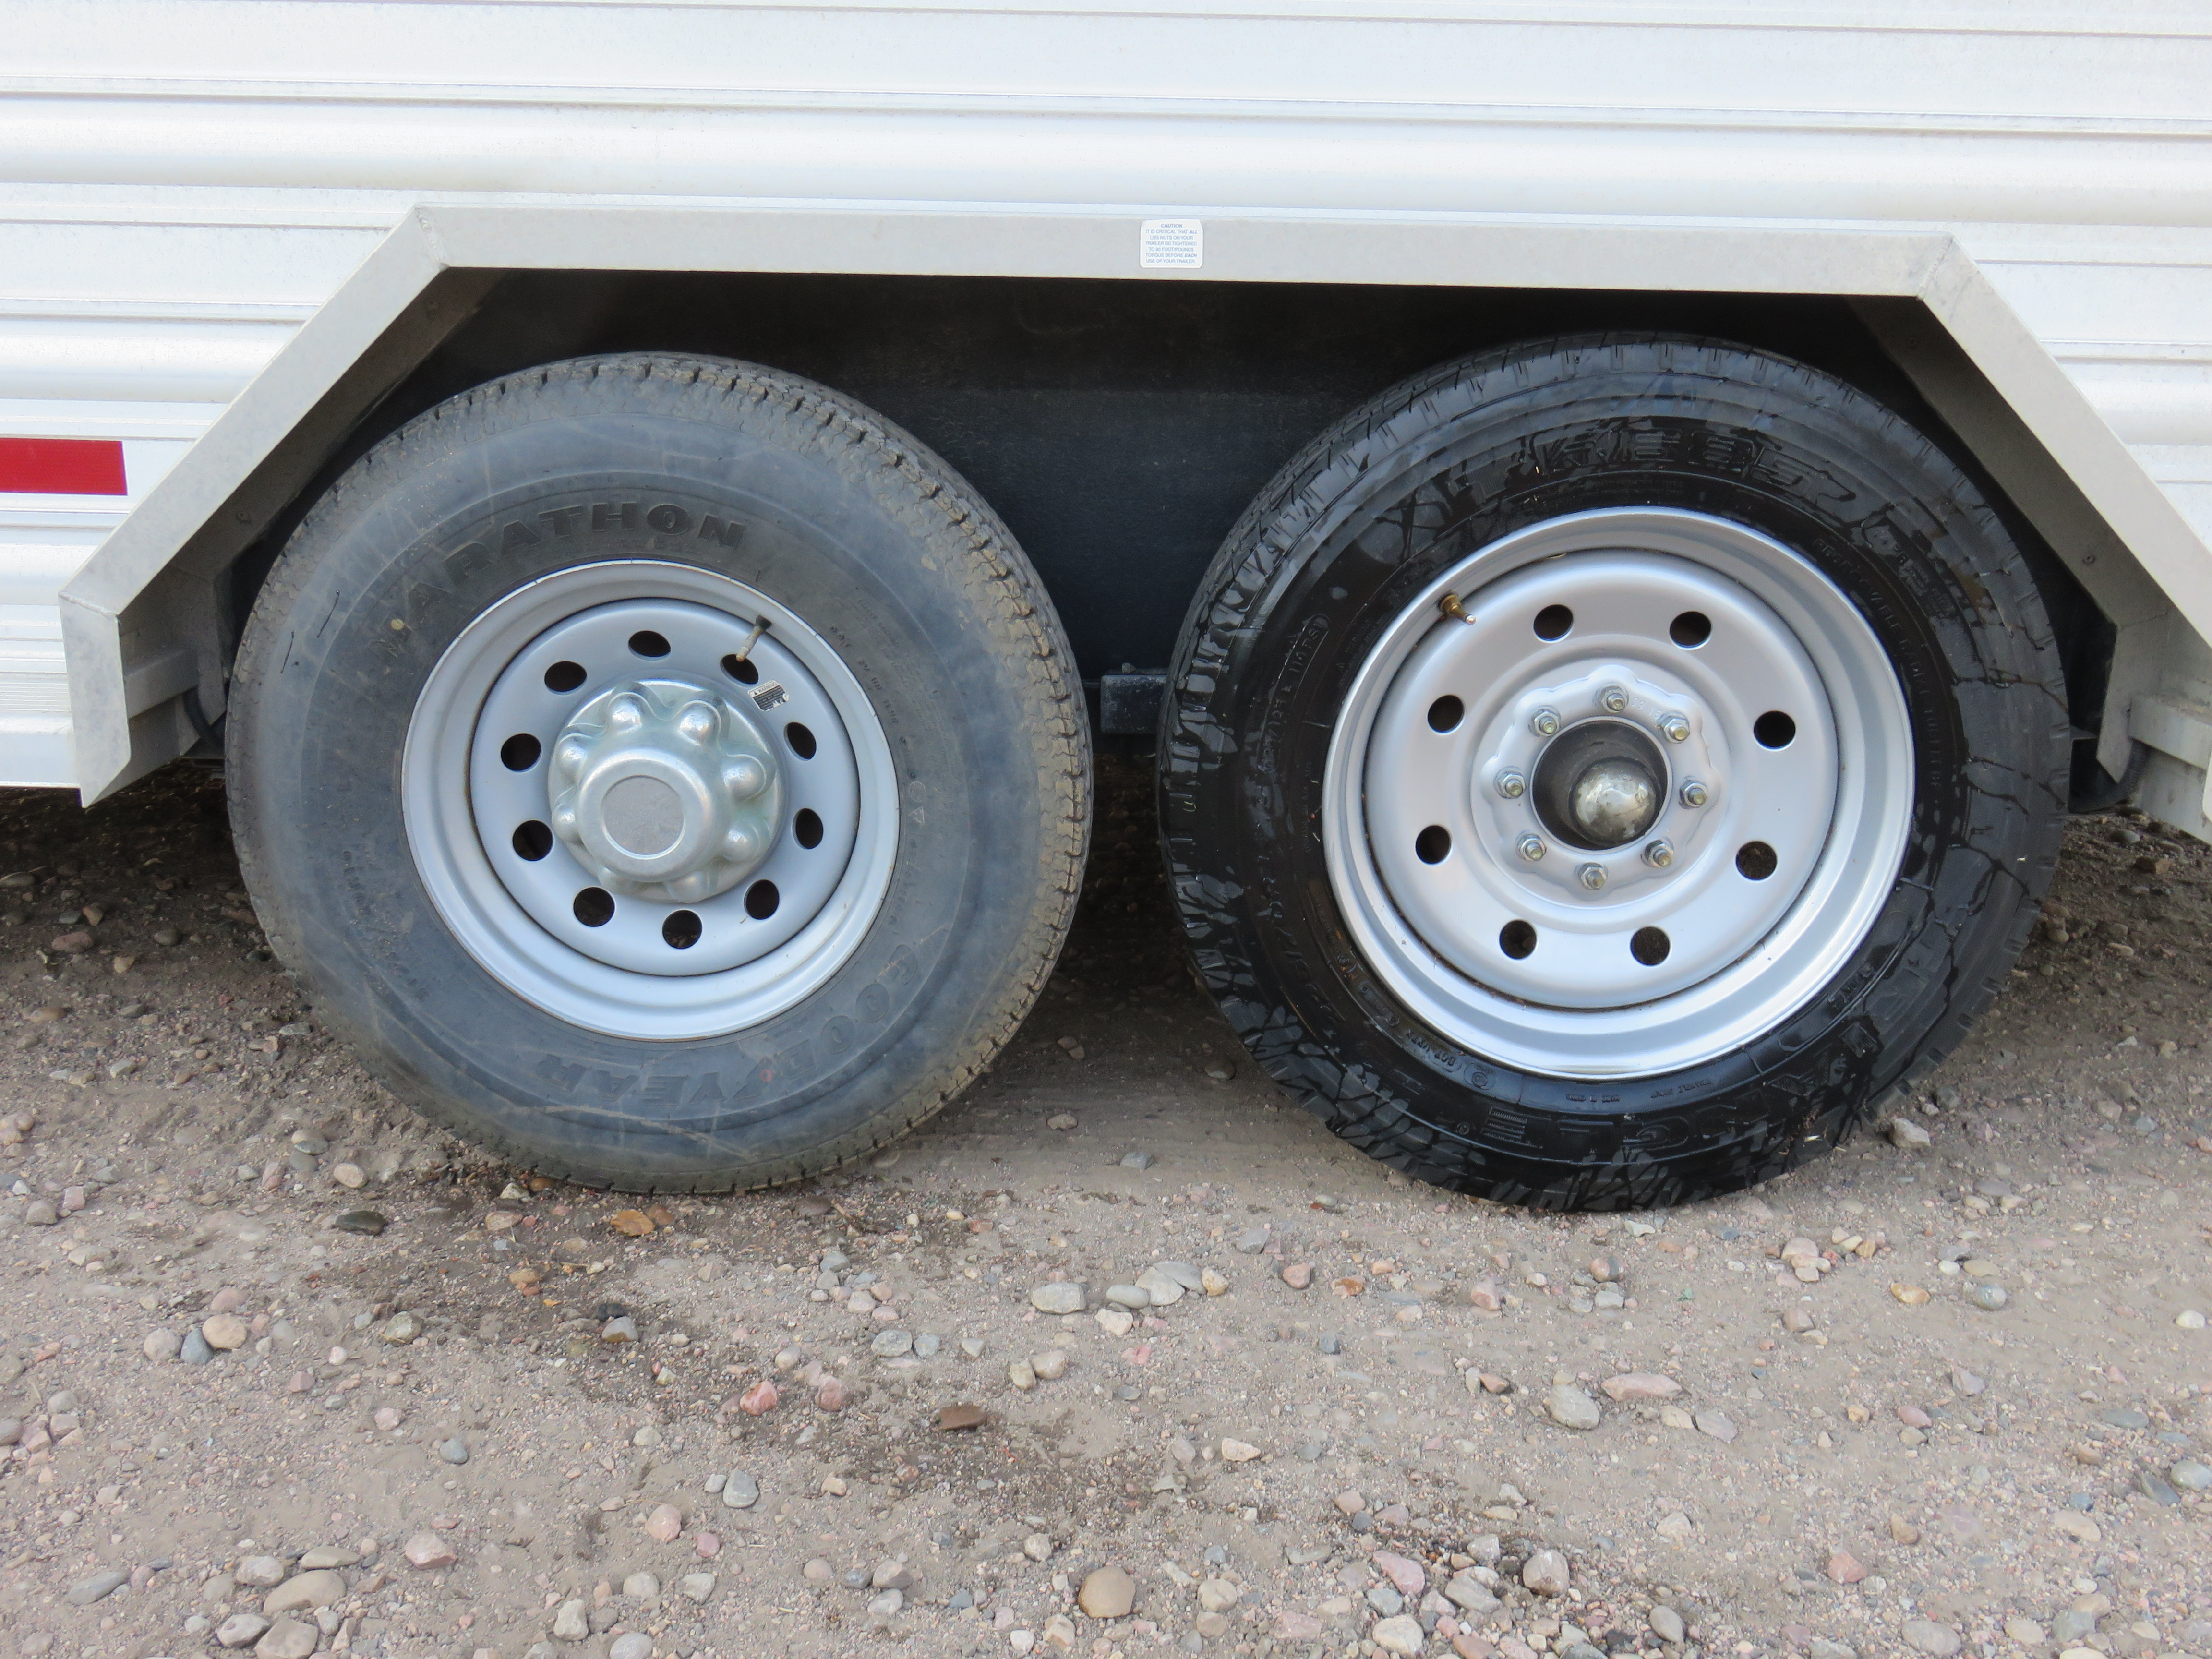 Boar Wheel And Tire Overkill Trailer Tires Welcome To Mrtrailer Com